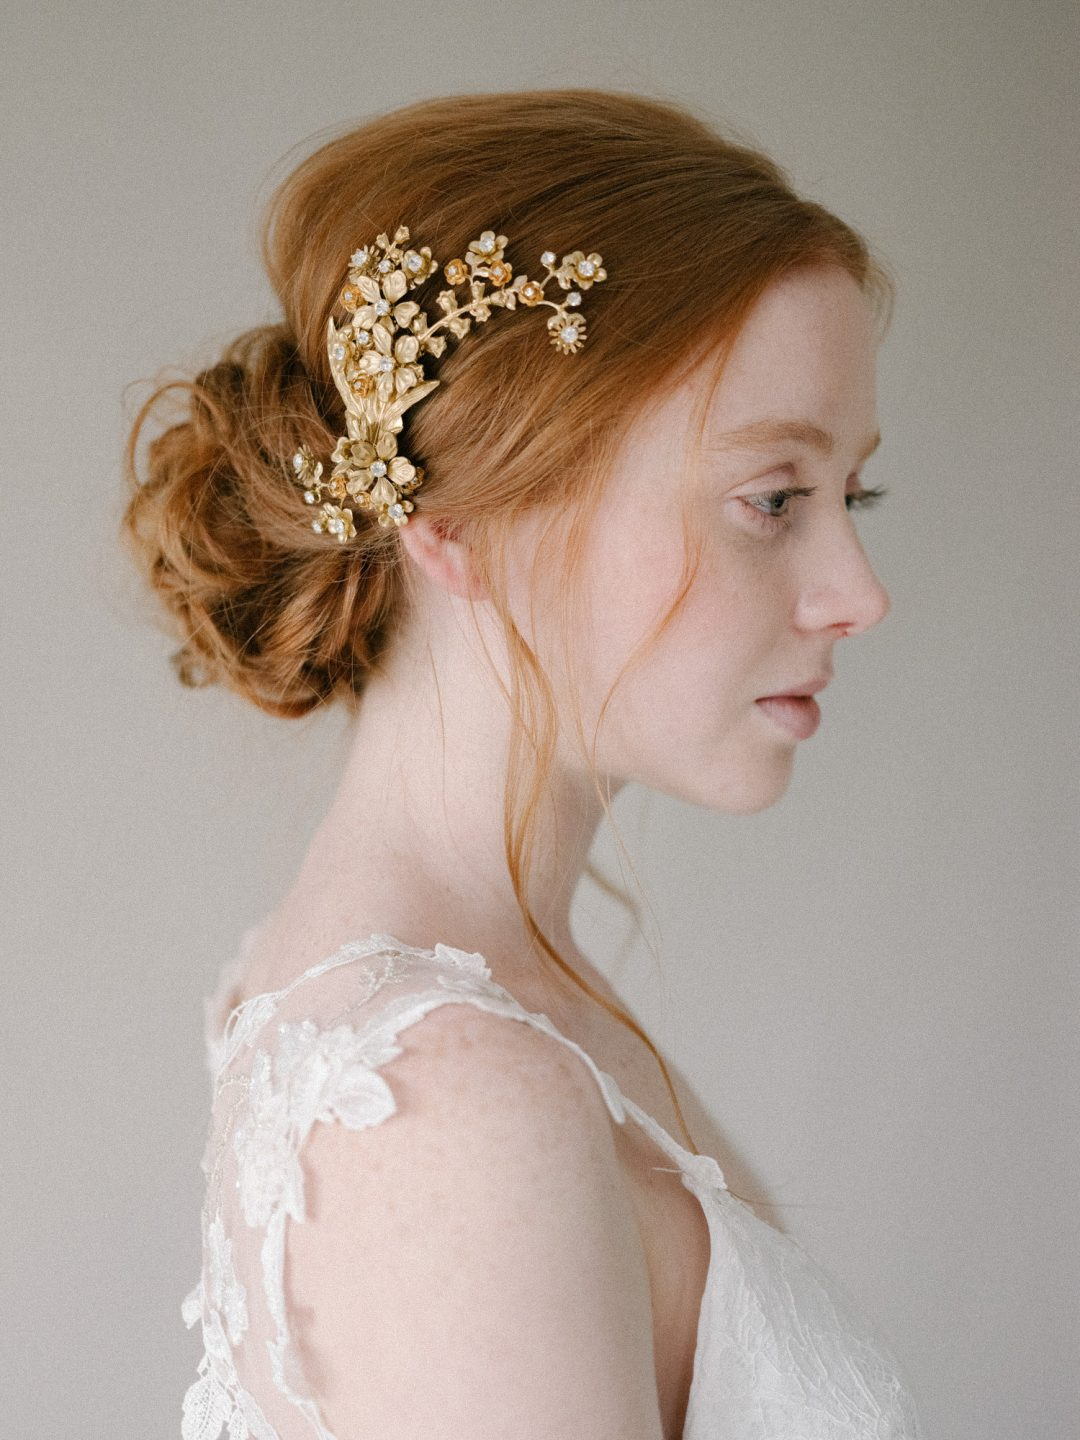 Style 814 - GOLD FLORAL BRIDAL HEADPIECE by SIBO Designs Couture www.sibodesigns.com